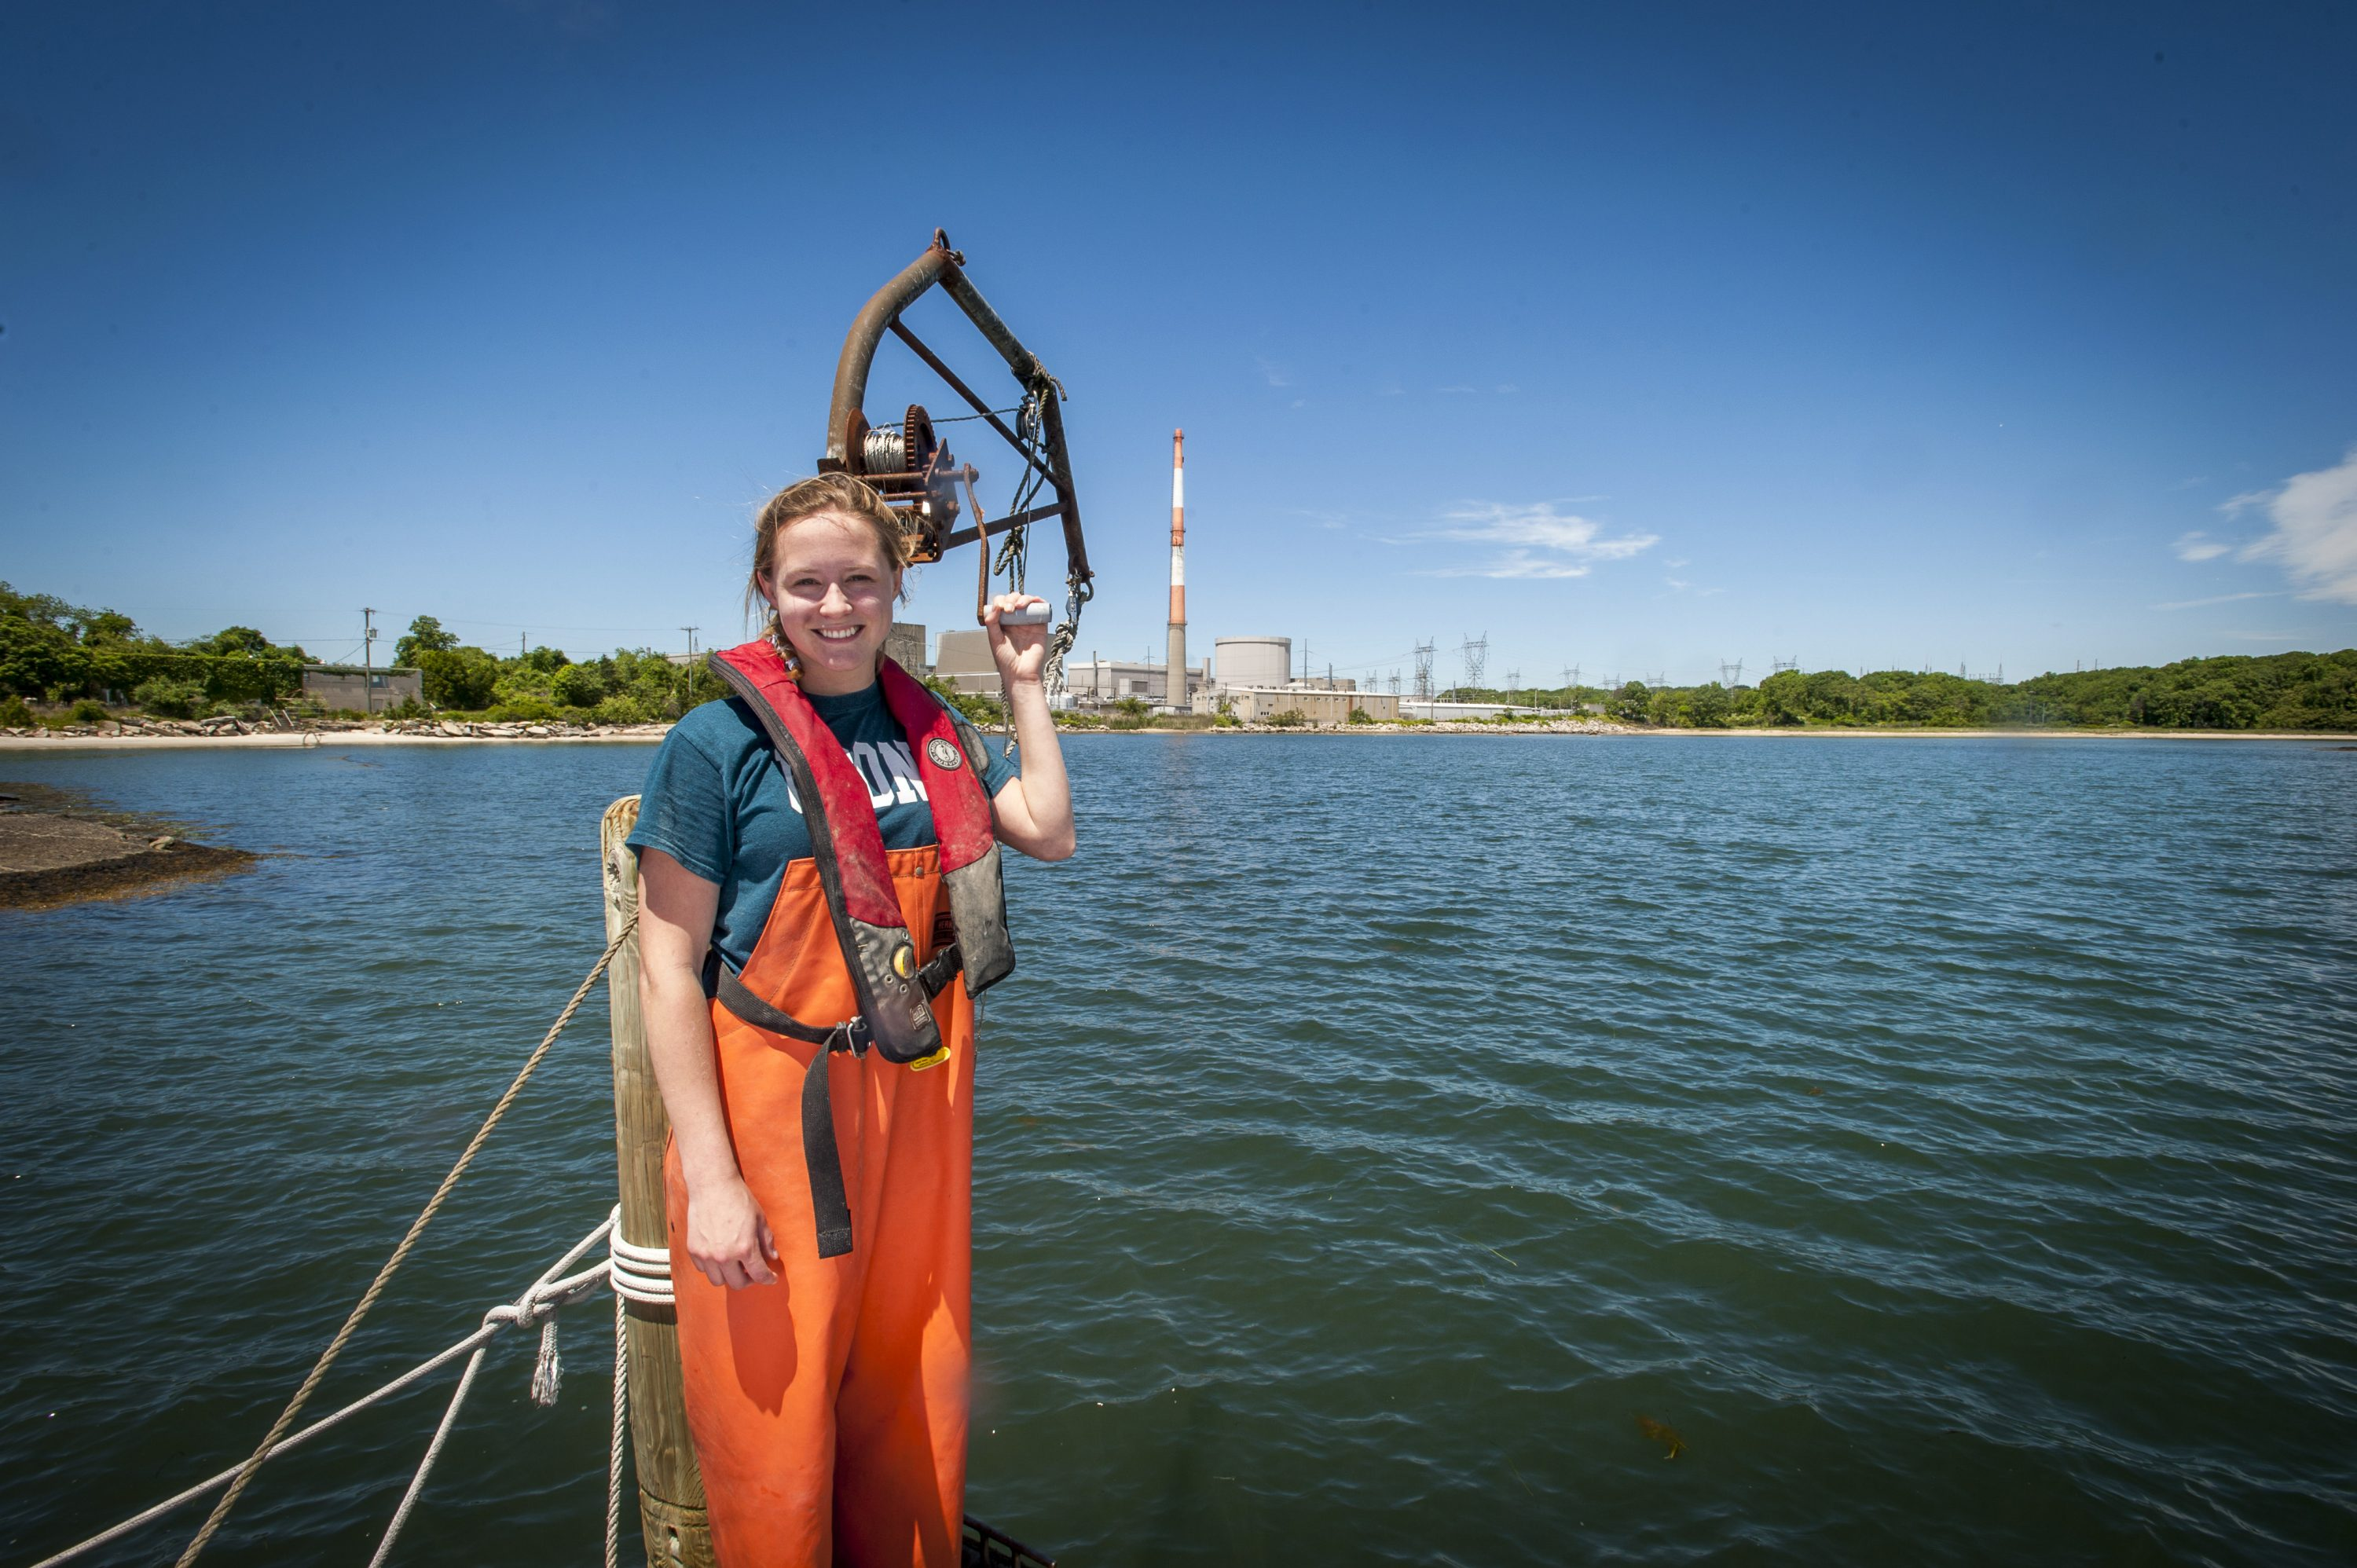 Environmental studies major Hannah Casey is gaining valuable work experience as an environmental monitor during an internship at the Millstone Nuclear Power Plant. (Sean Flynn/UConn Photo)